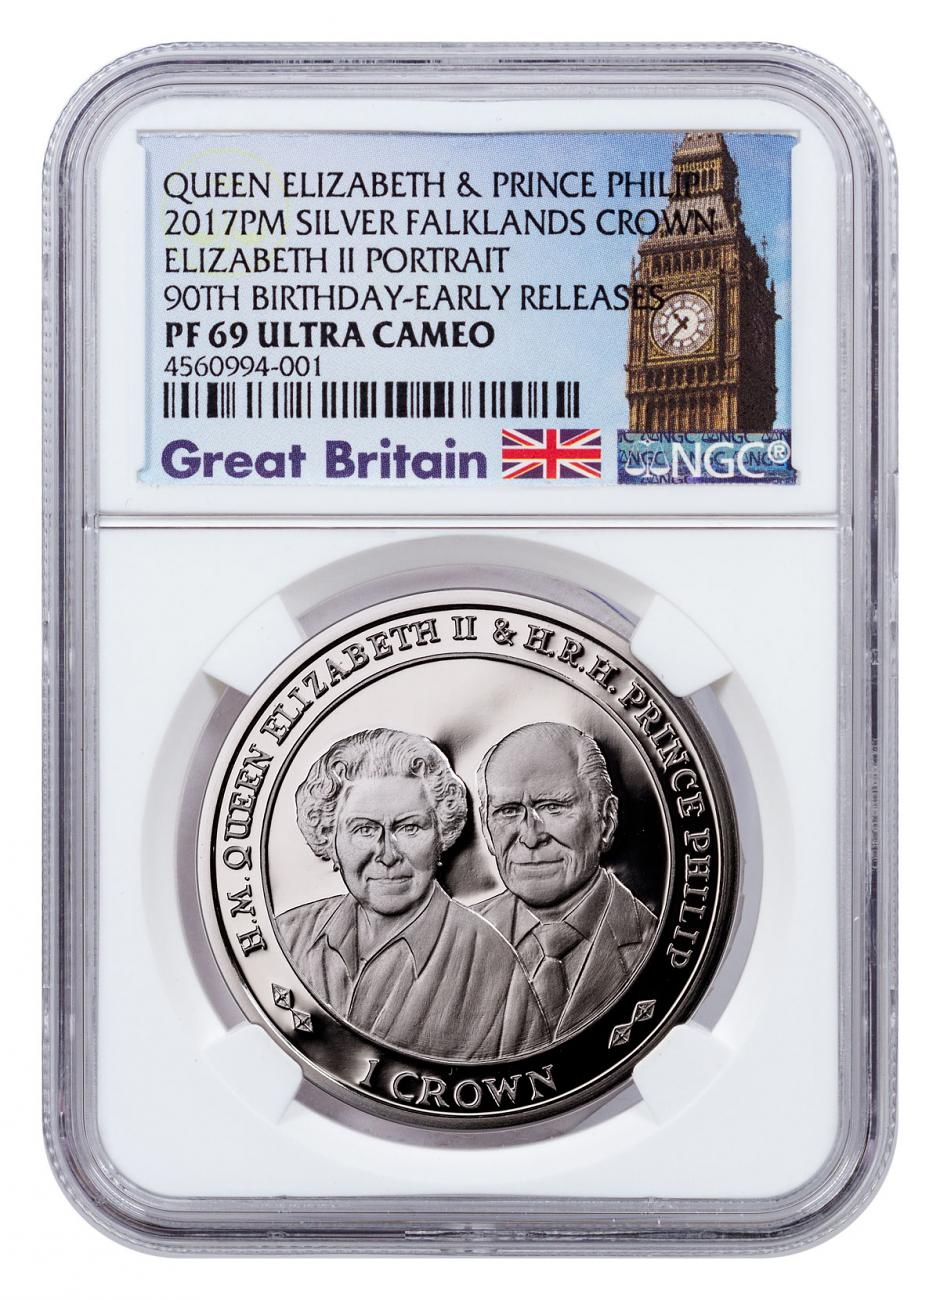 2017 Falkland Islands 70 Years of Queen Elizabeth II & Prince Phillip - 90th Birthday 1 oz Silver Proof £2 Coin NGC PF69 UC ER Exclusive Big Ben Label